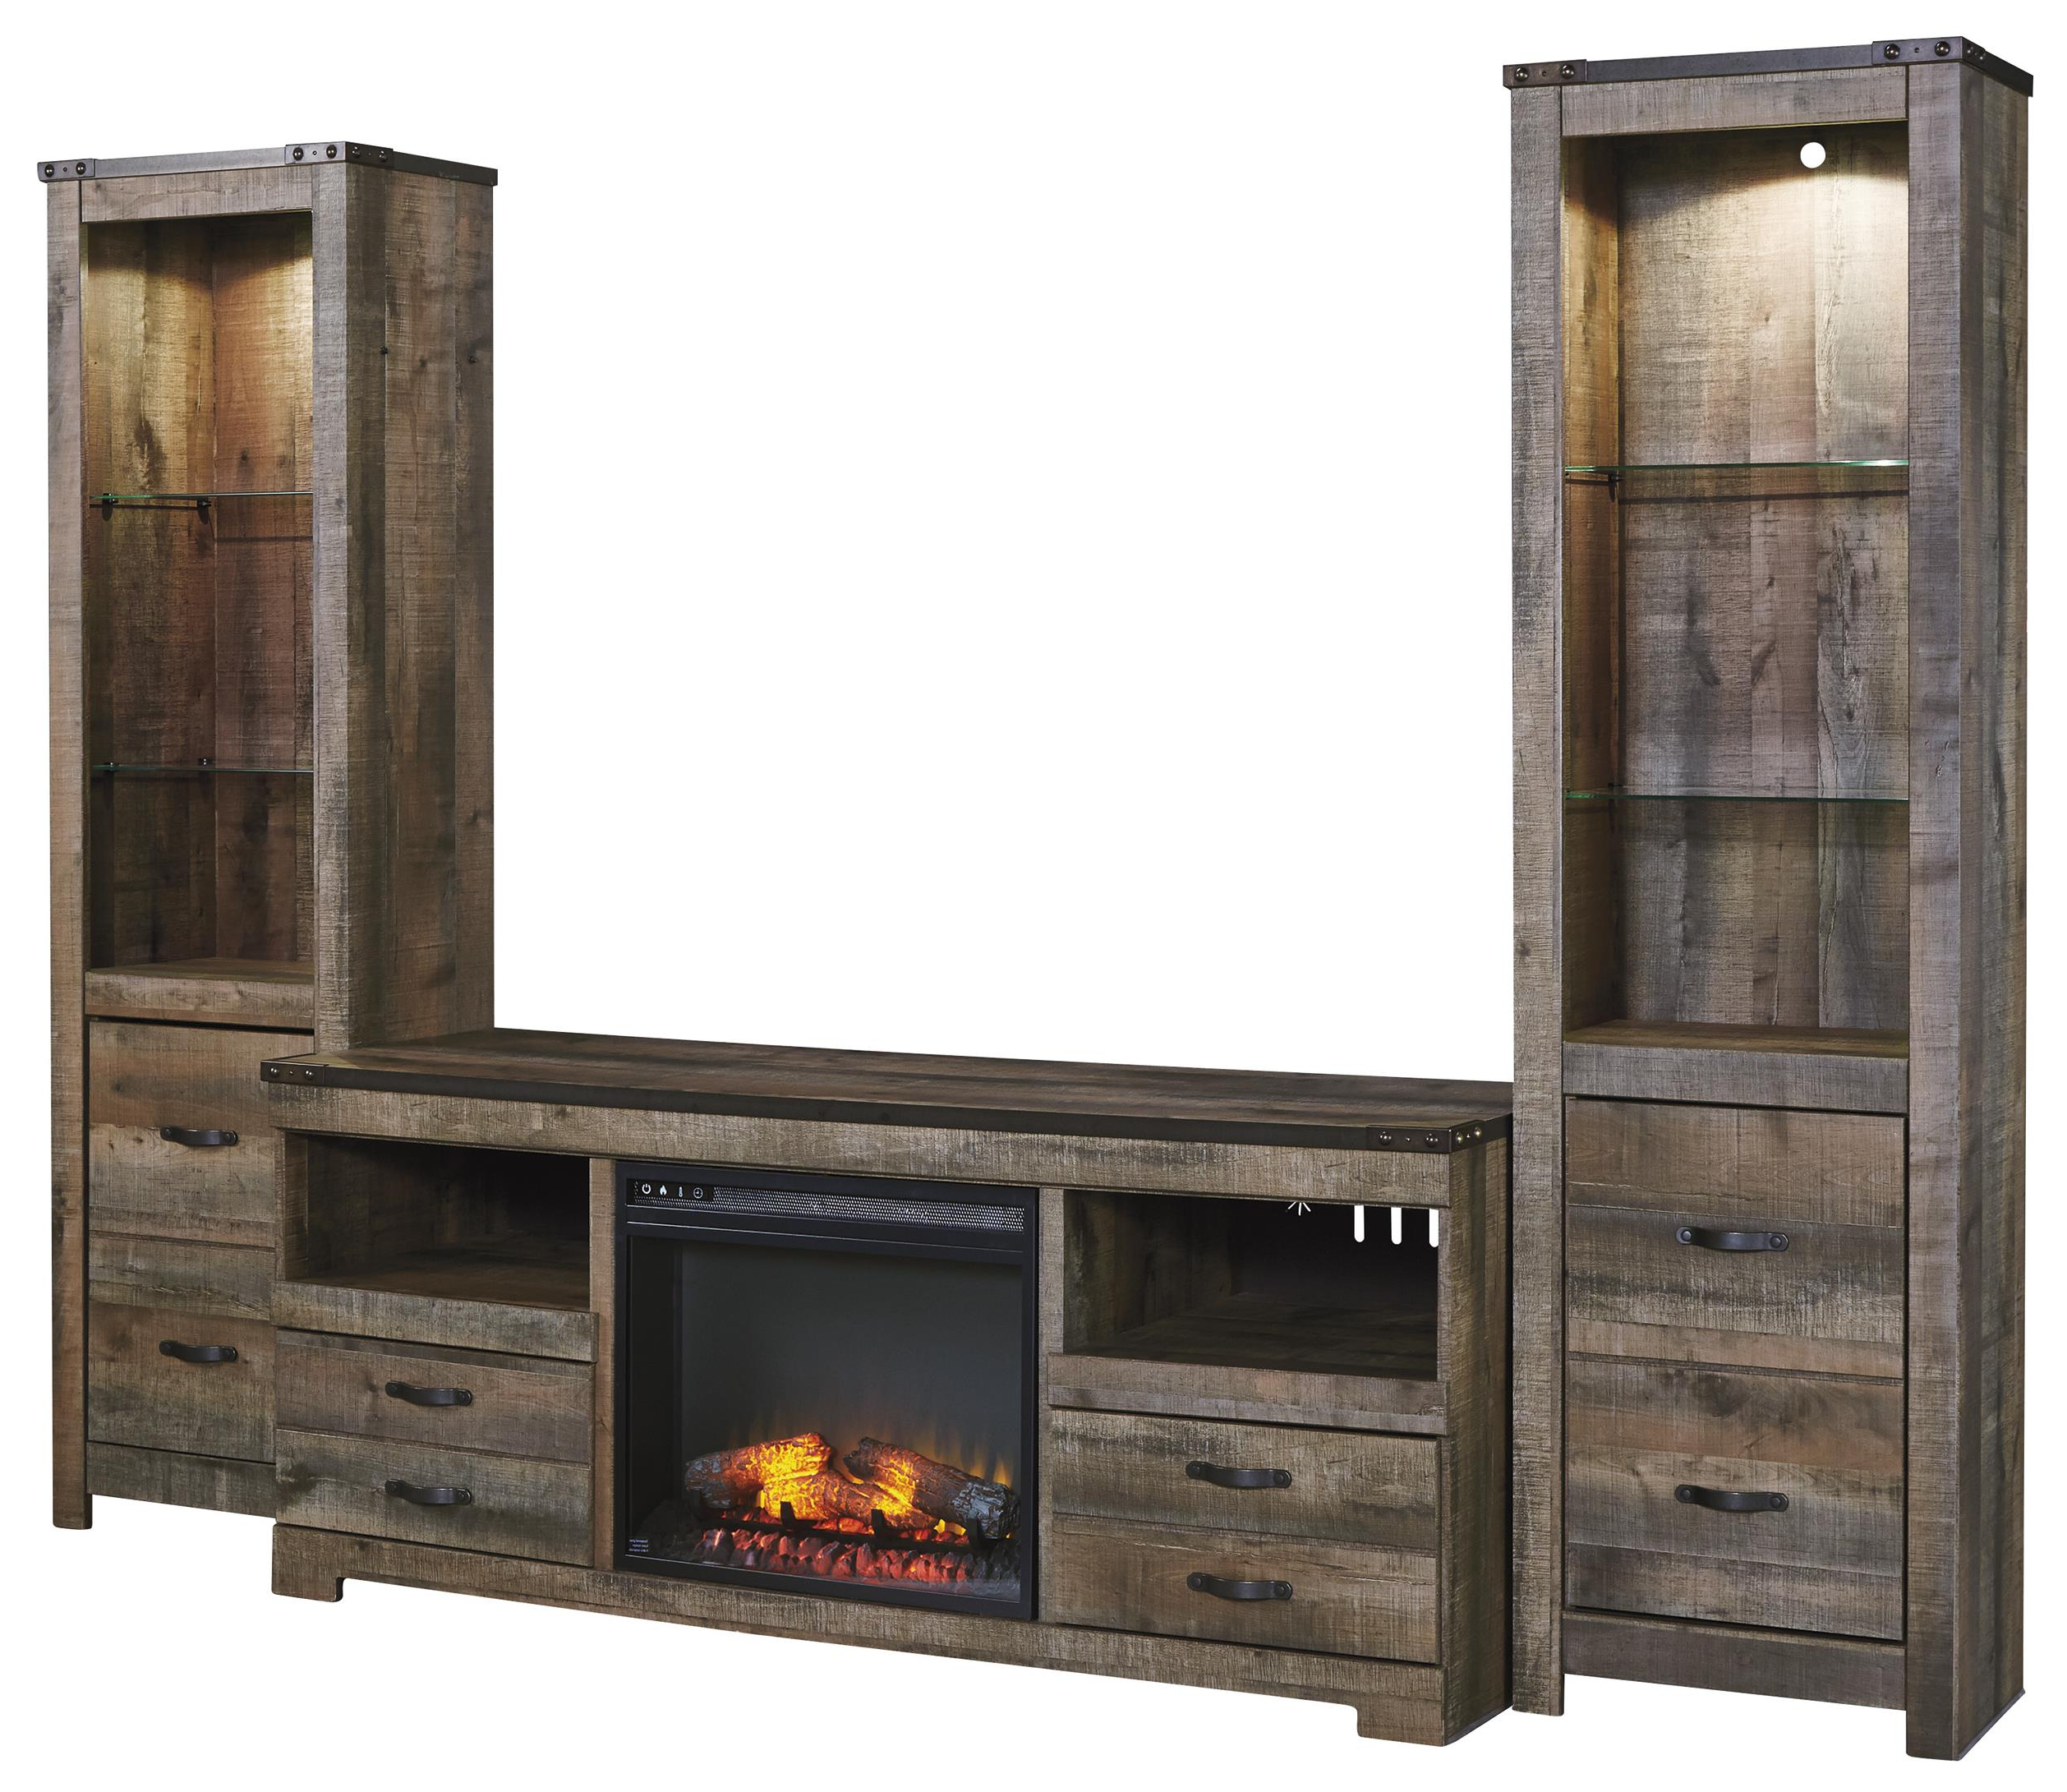 Most Recently Released Rustic Large Tv Stand W/ Fireplace Insert & 2 Tall Piers Within 24 Inch Tall Tv Stands (View 11 of 20)